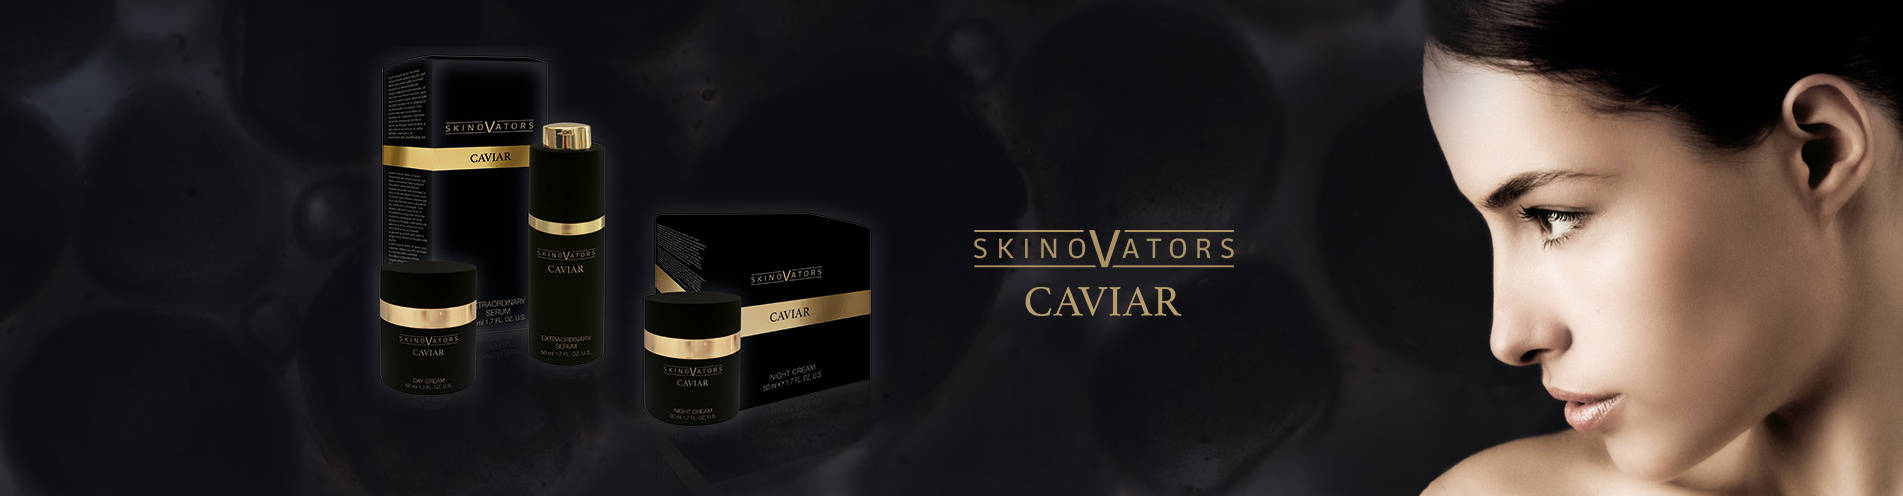 Your brand name or label on Caviar Private Label Cosmetics German Manufacturer